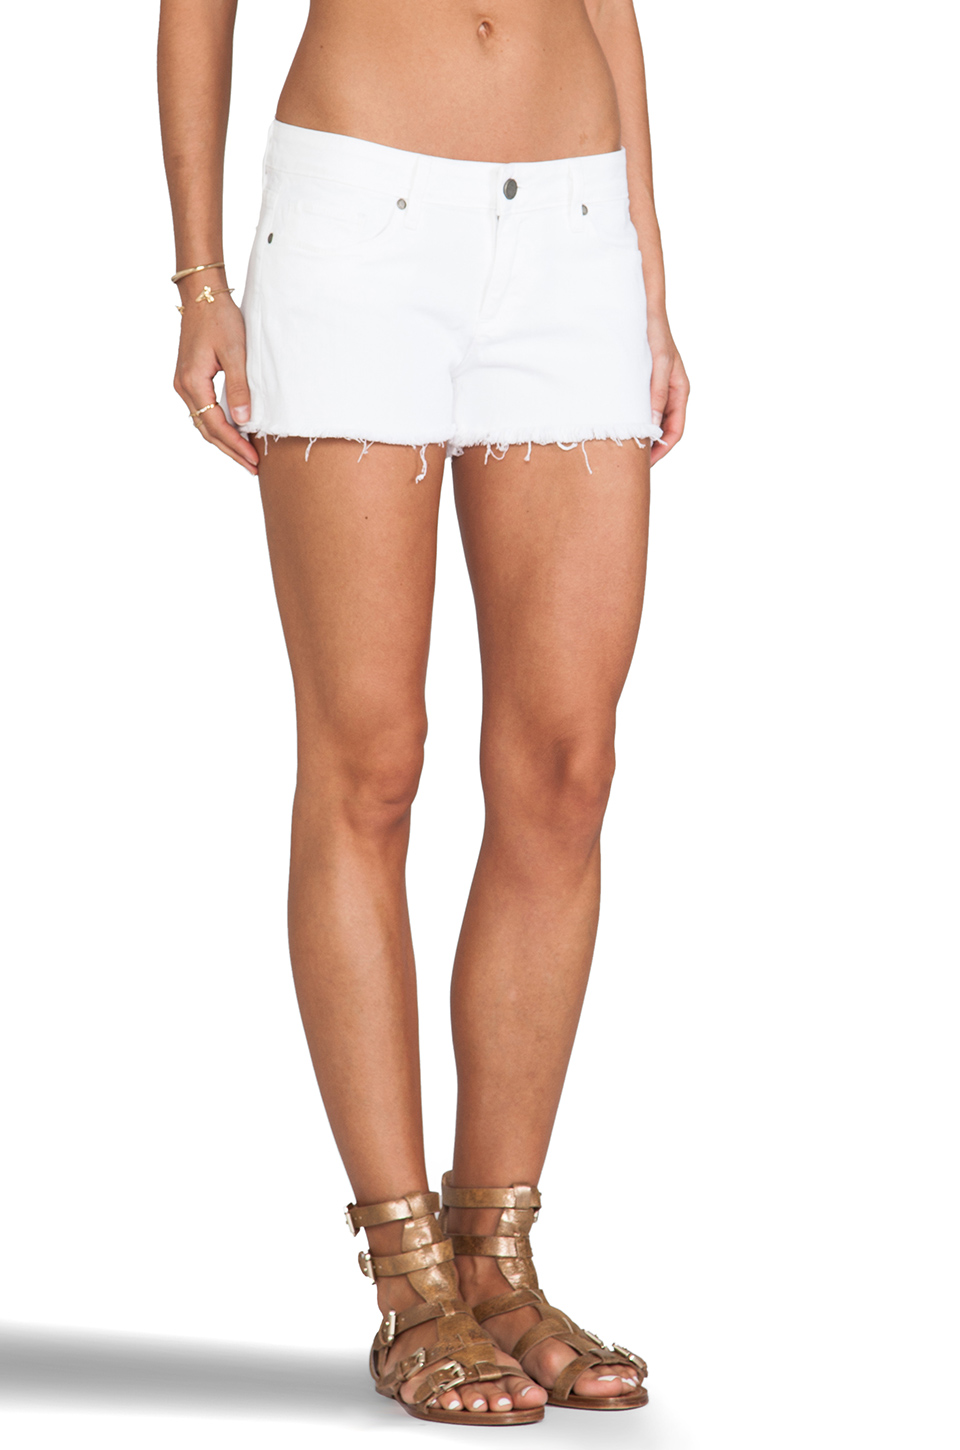 Paige Denim Catalina Short in Optic White from REVOLVEclothing.com